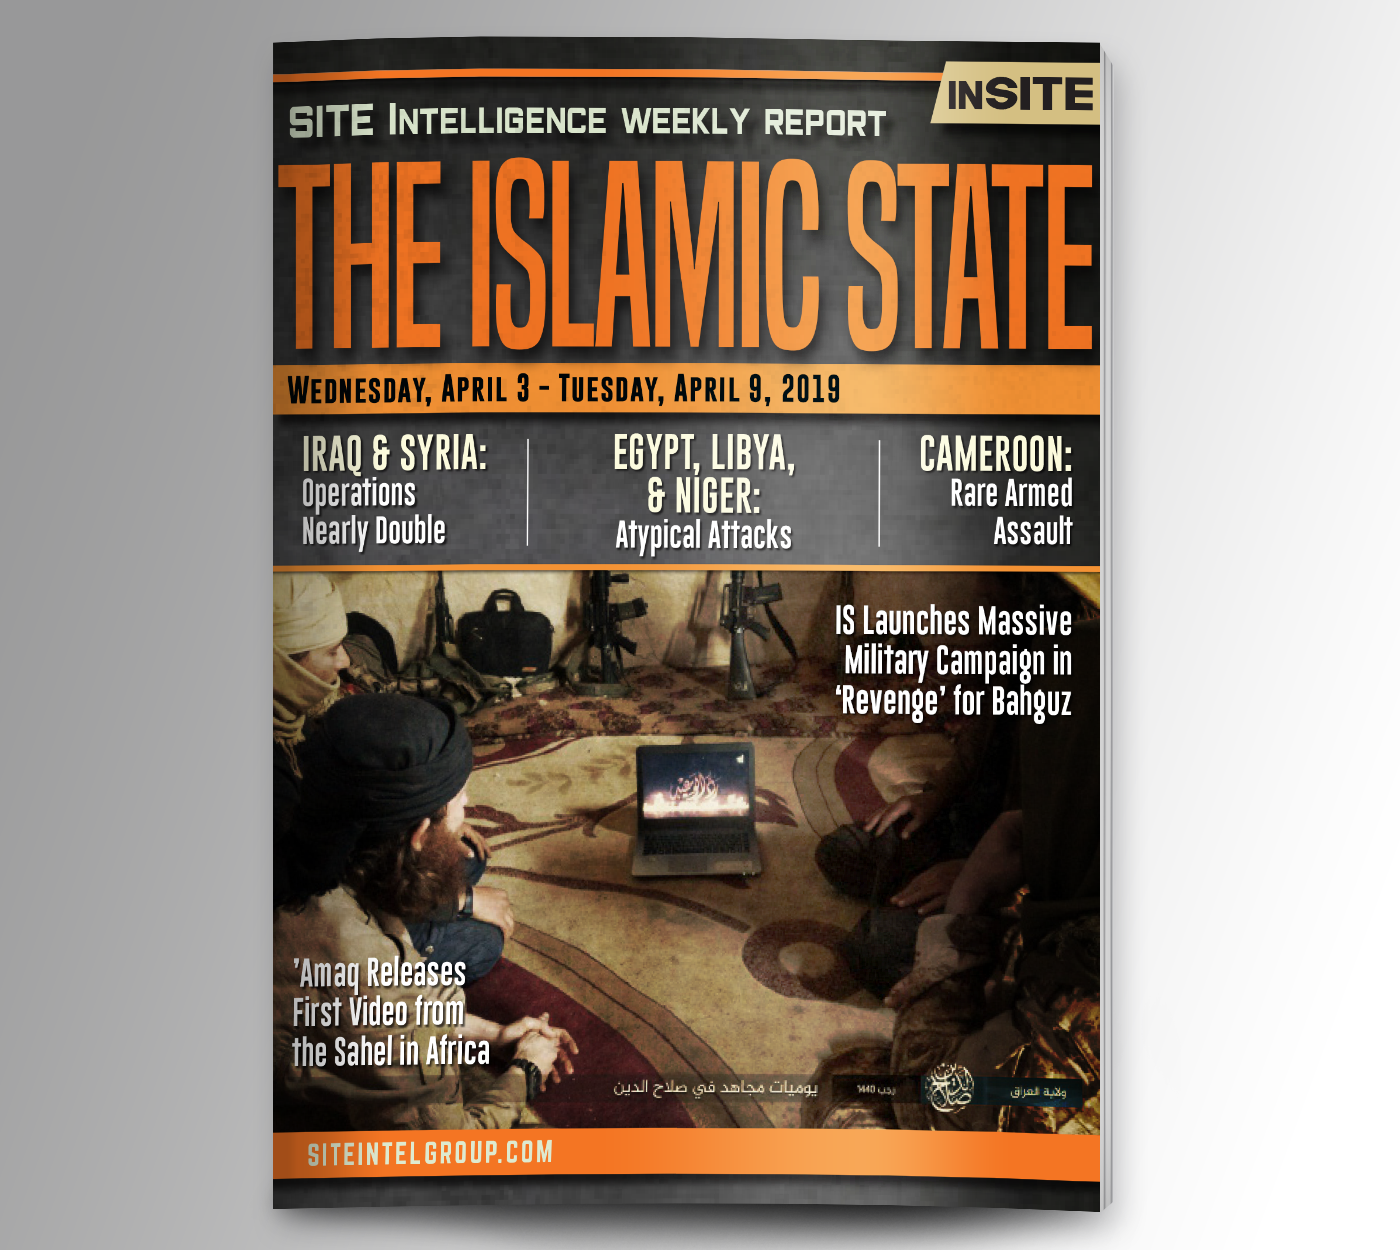 Weekly inSITE on the Islamic State for April 3-9, 2019